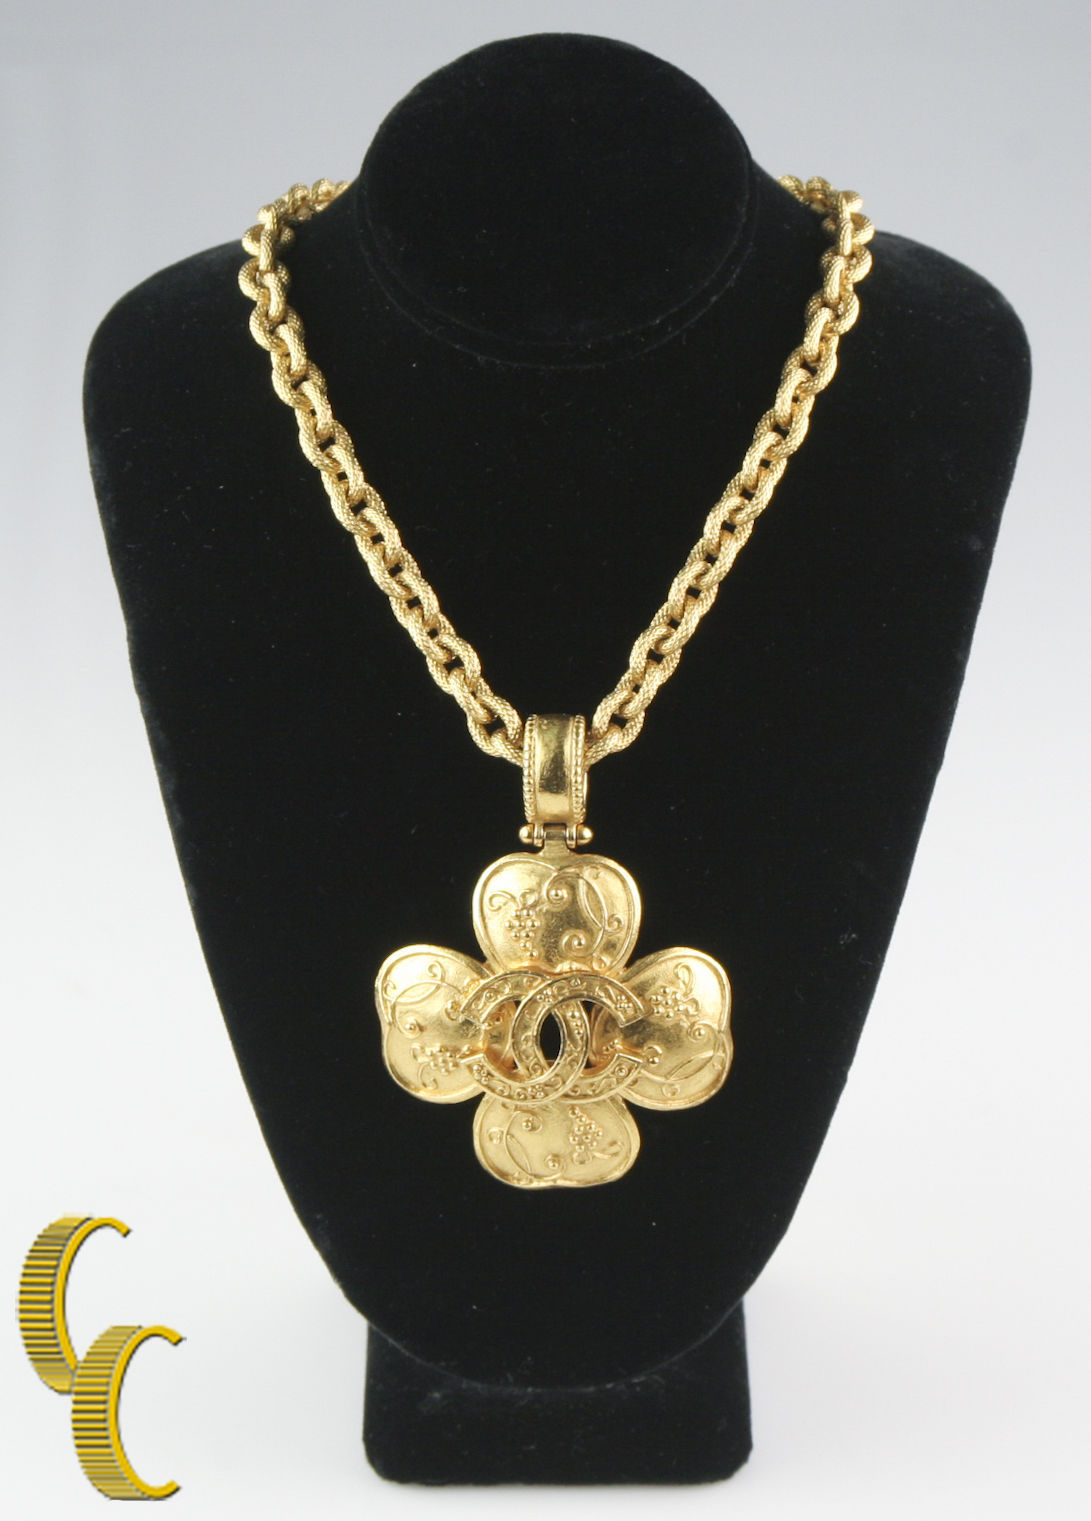 Chanel necklace pendant 1 listing gorgeous vintage chanel clover chunky gold plated necklace pendant 890 grams 118800 aloadofball Choice Image